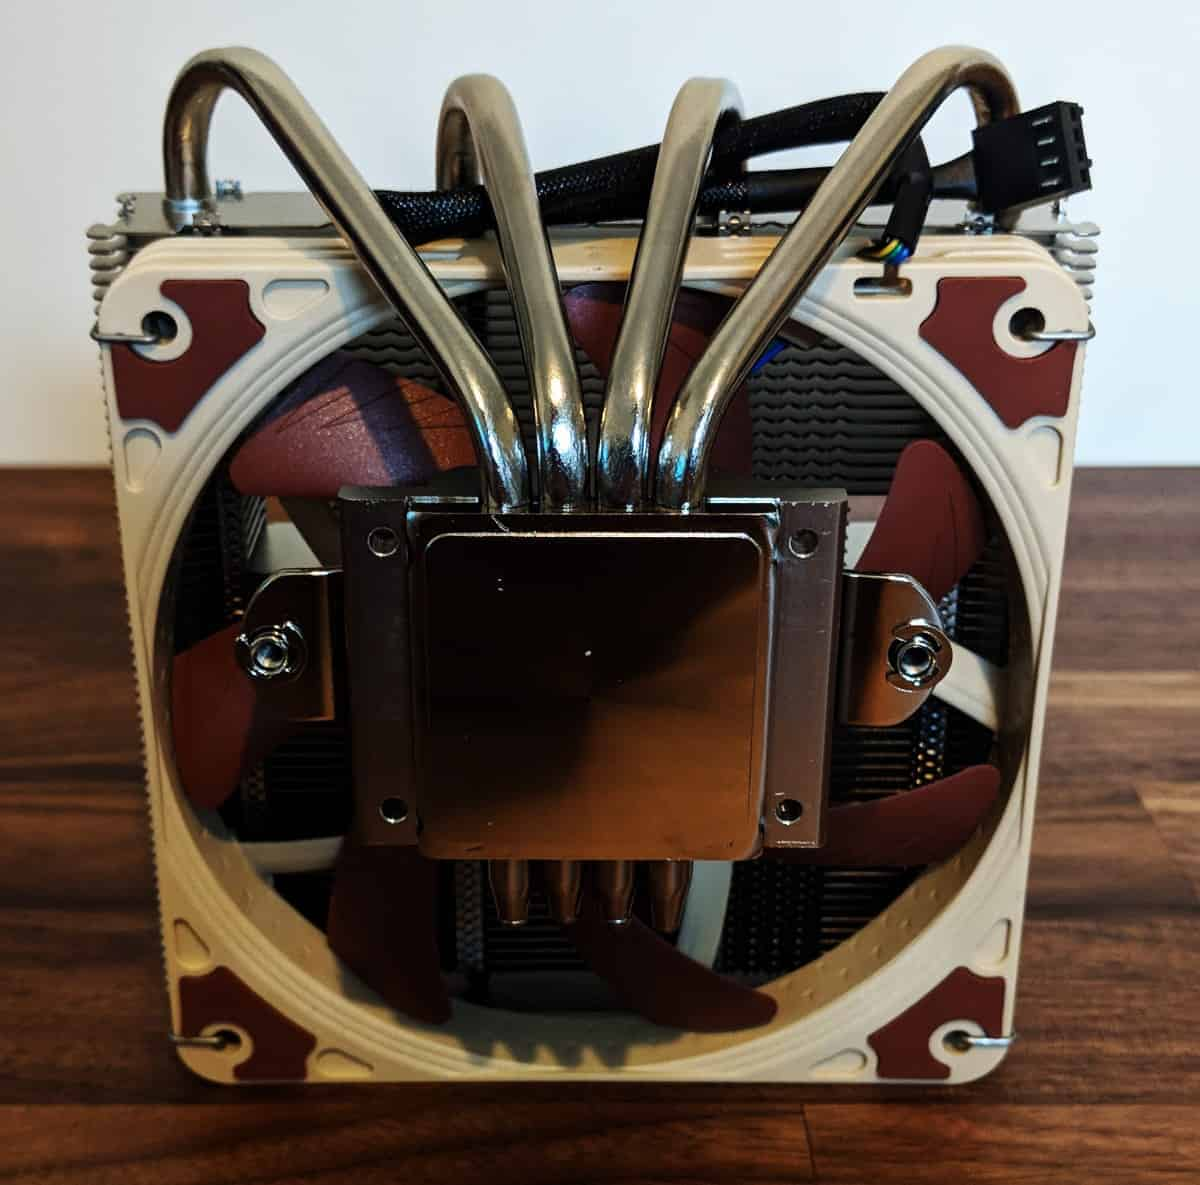 Noctua-NH-L12S-Photos-16 Noctua NH-L12S Review